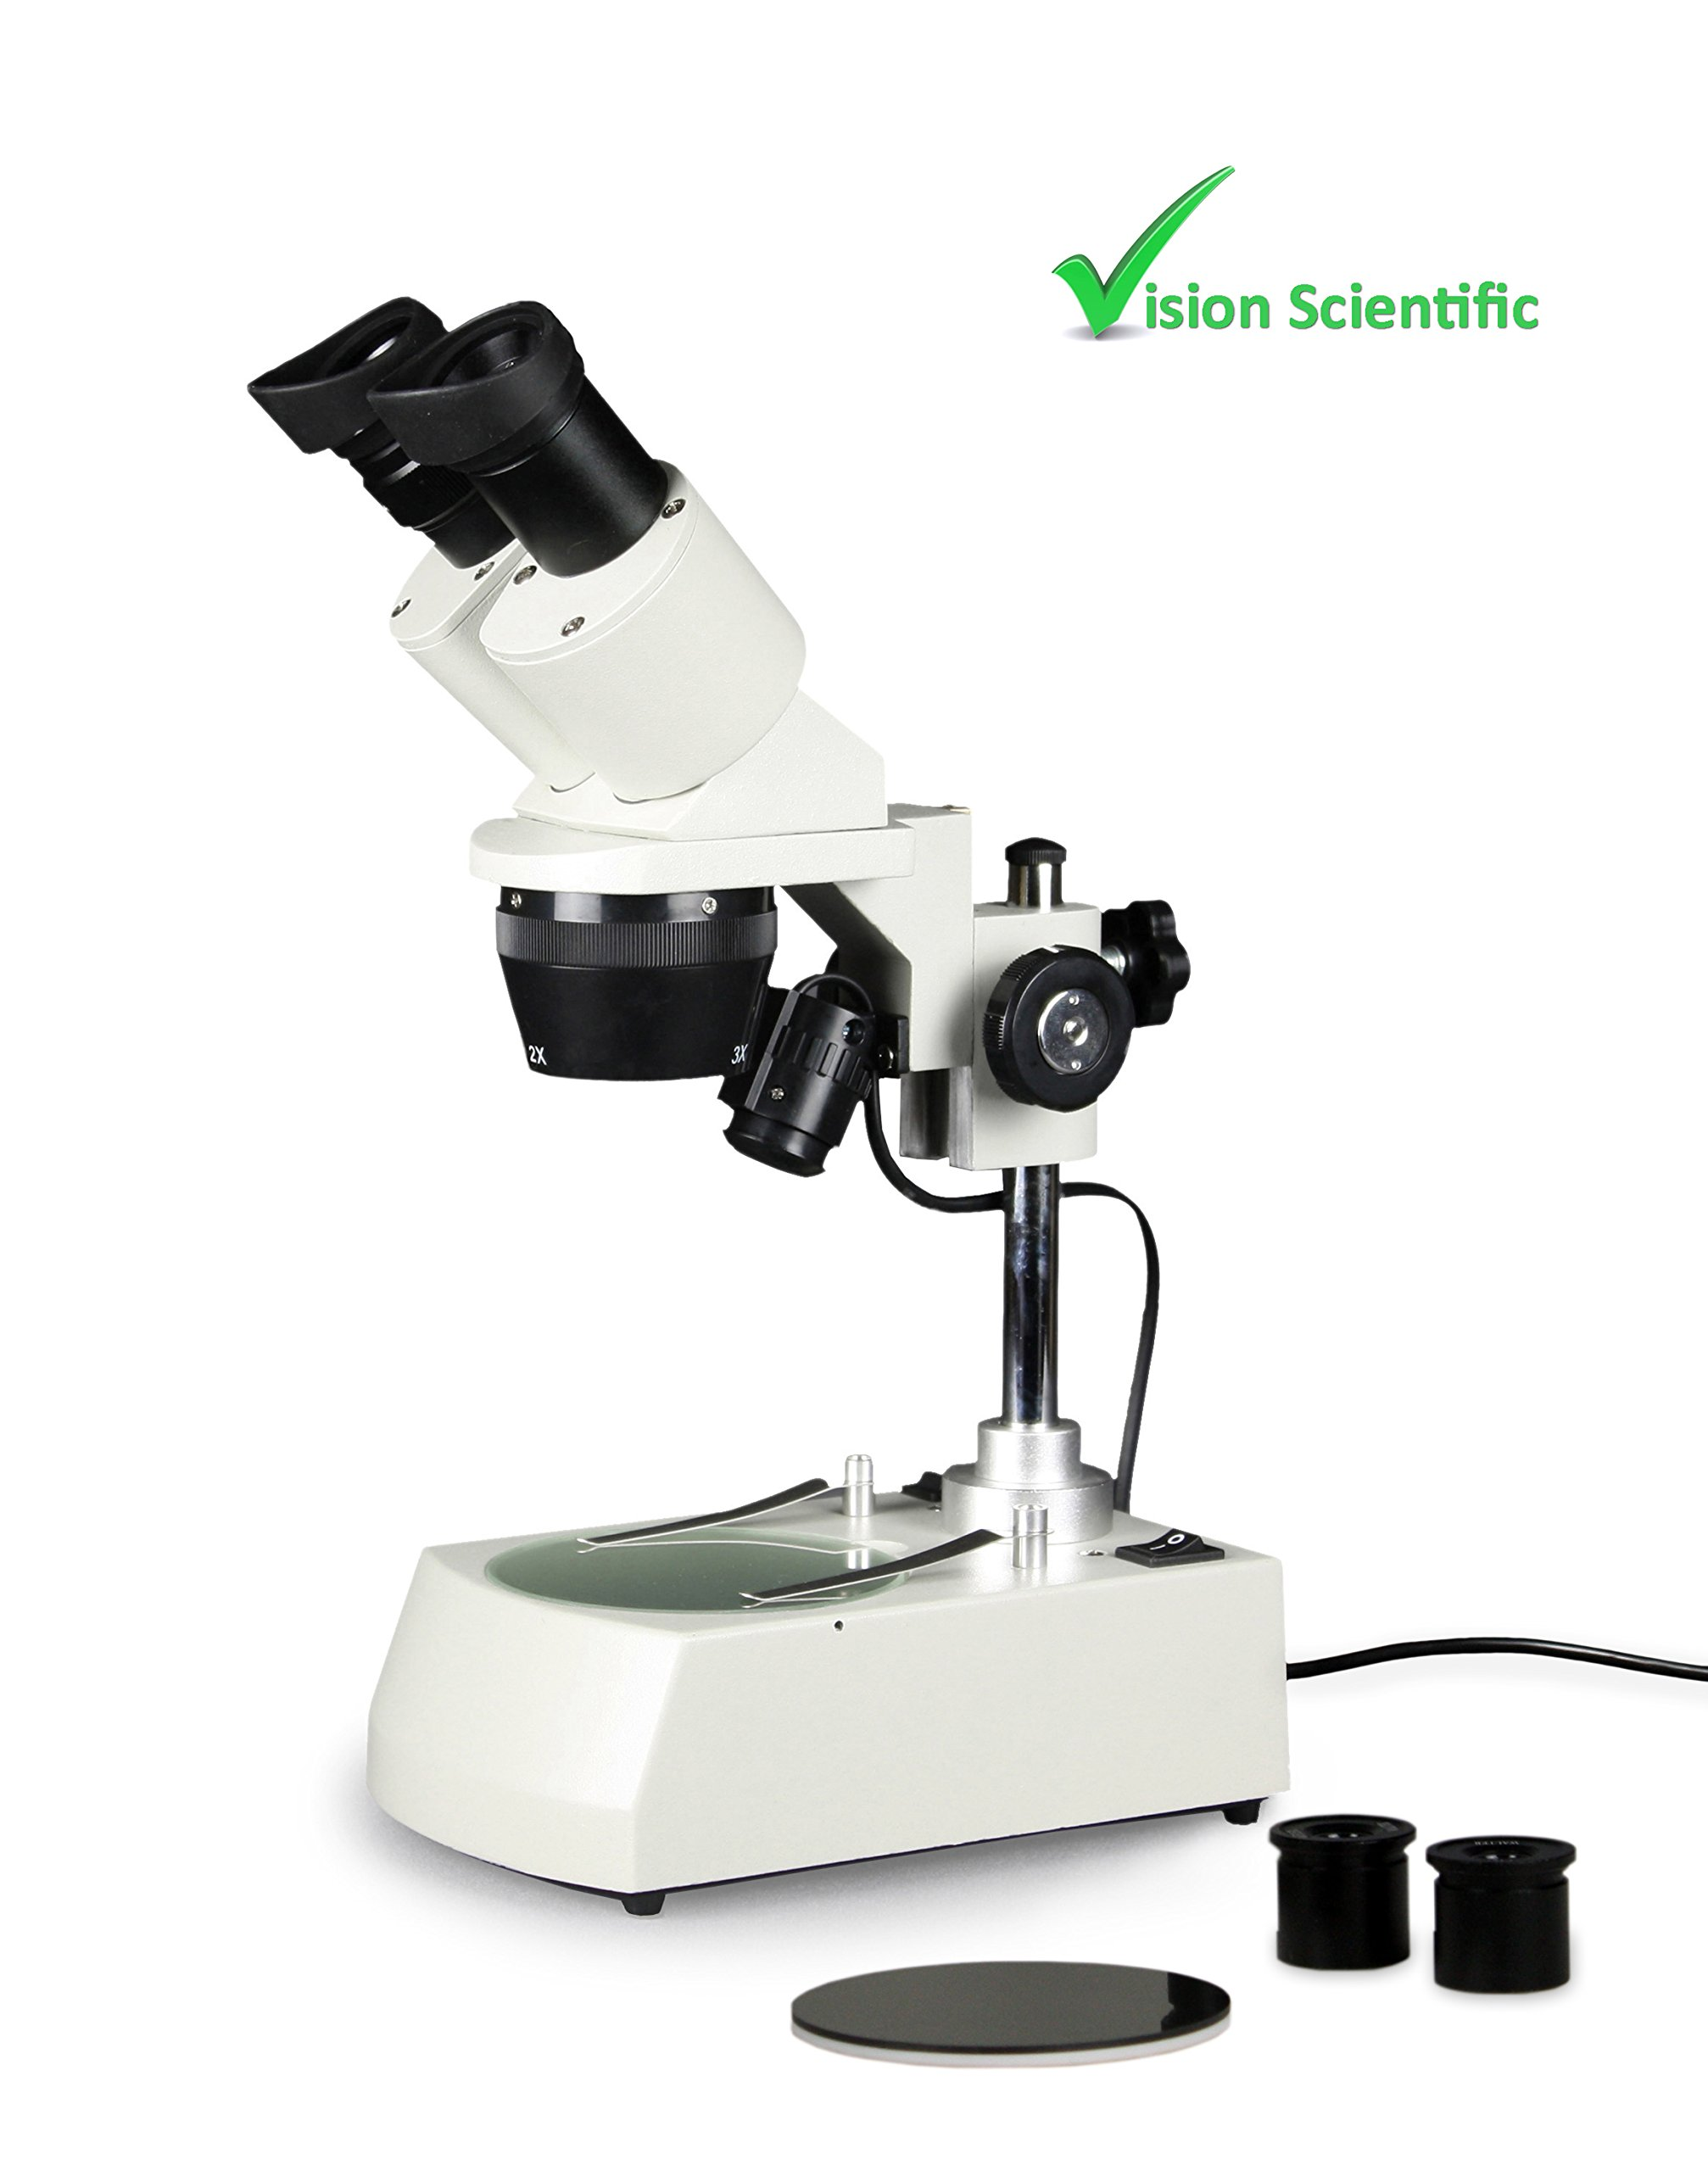 Vision Scientific VMS0002-LD-234-ES2 Tri-Power Binocular Stereo Microscope, 2X, 3X, 4X Objectives, Pair of 10x and Pair of 20x WF Eyepieces, 20x, 30x, 40x, 60x, 80x Magnification, Top and Bottom LED by Vision Scientific